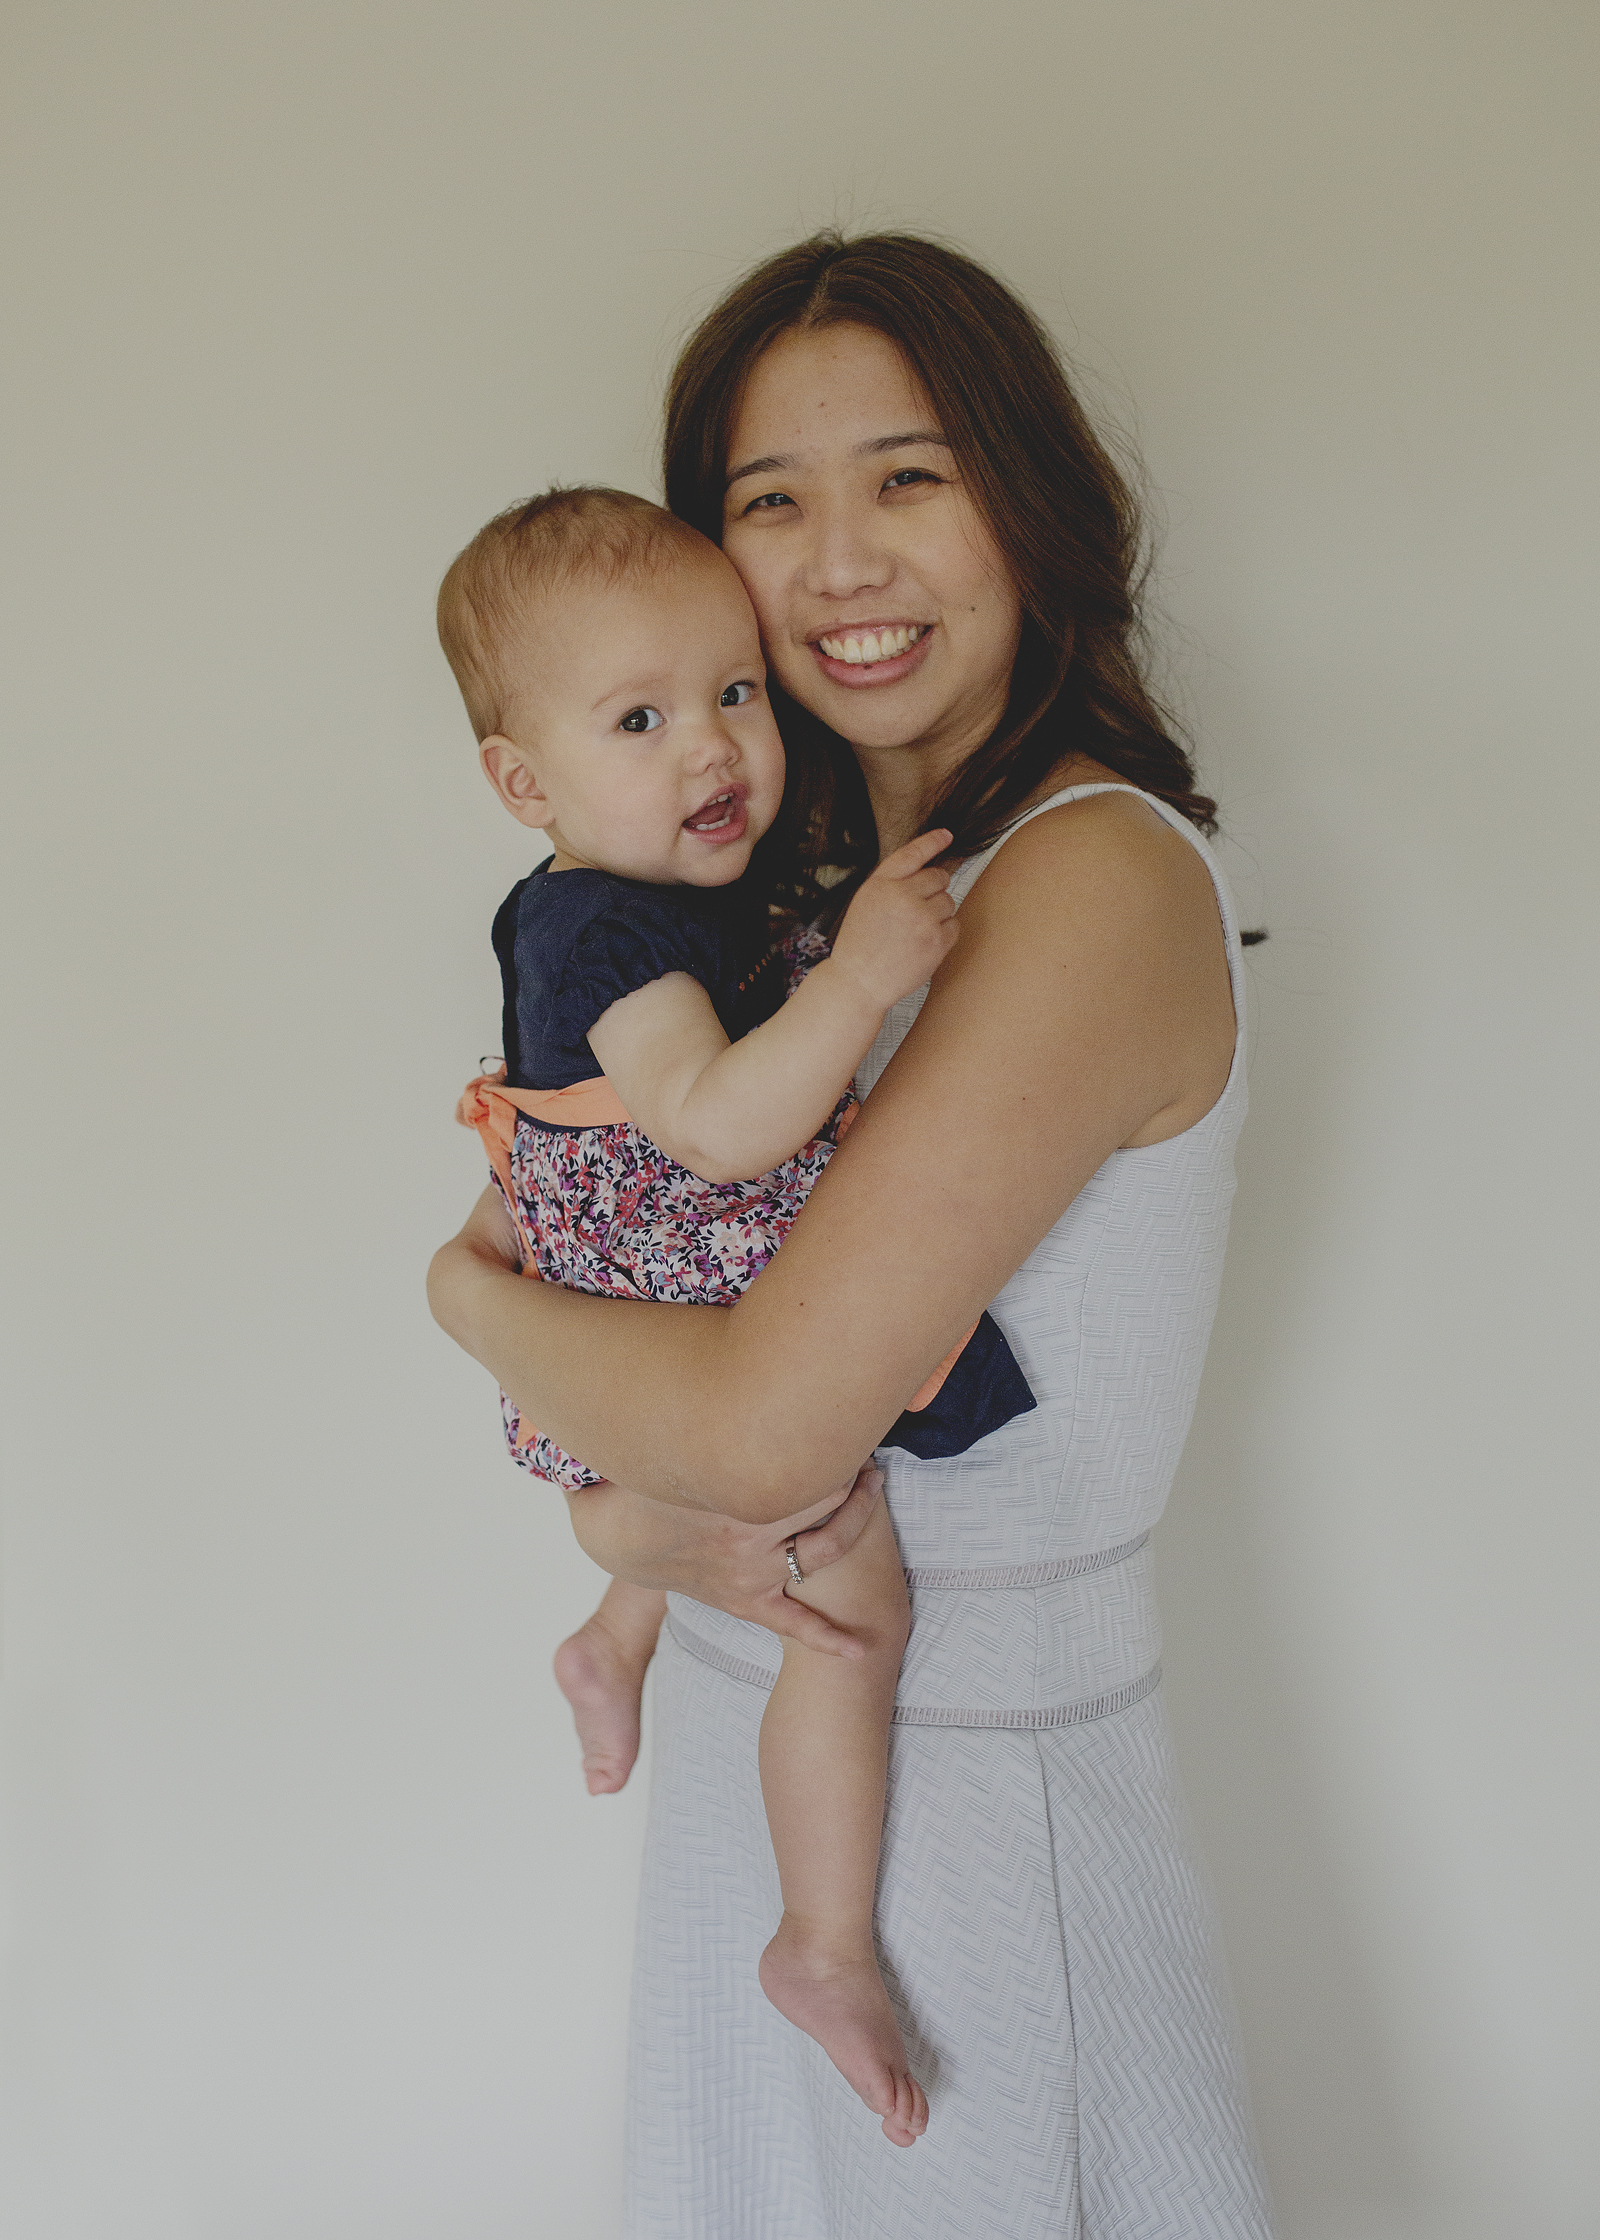 Mummy and her one year old baby girl